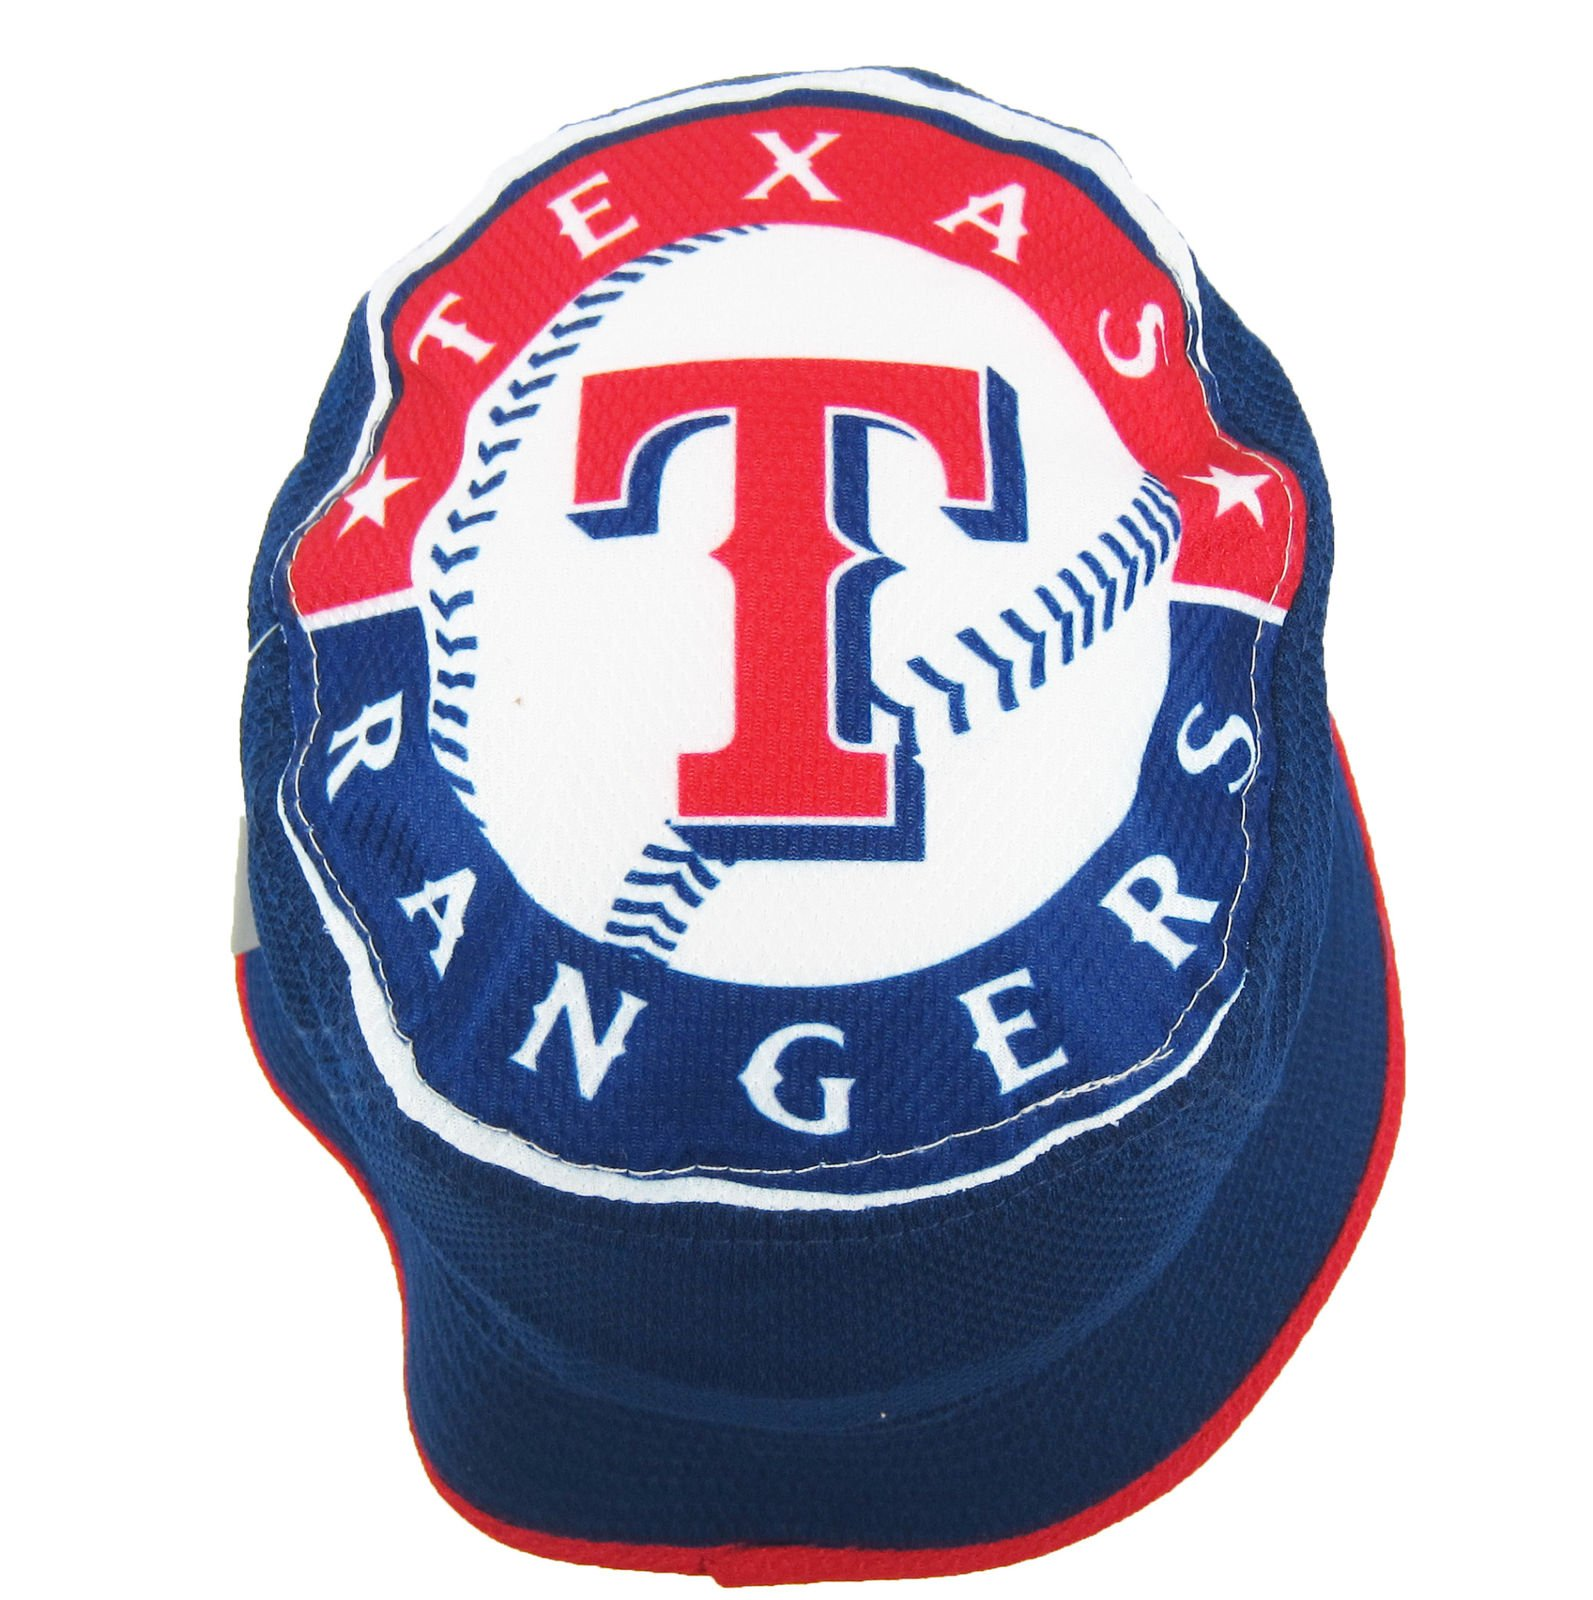 f41d0e33b19b29 Details about New Era Kids MLB Texas Rangers Bucket Hat Child-Youth One Size  NWT